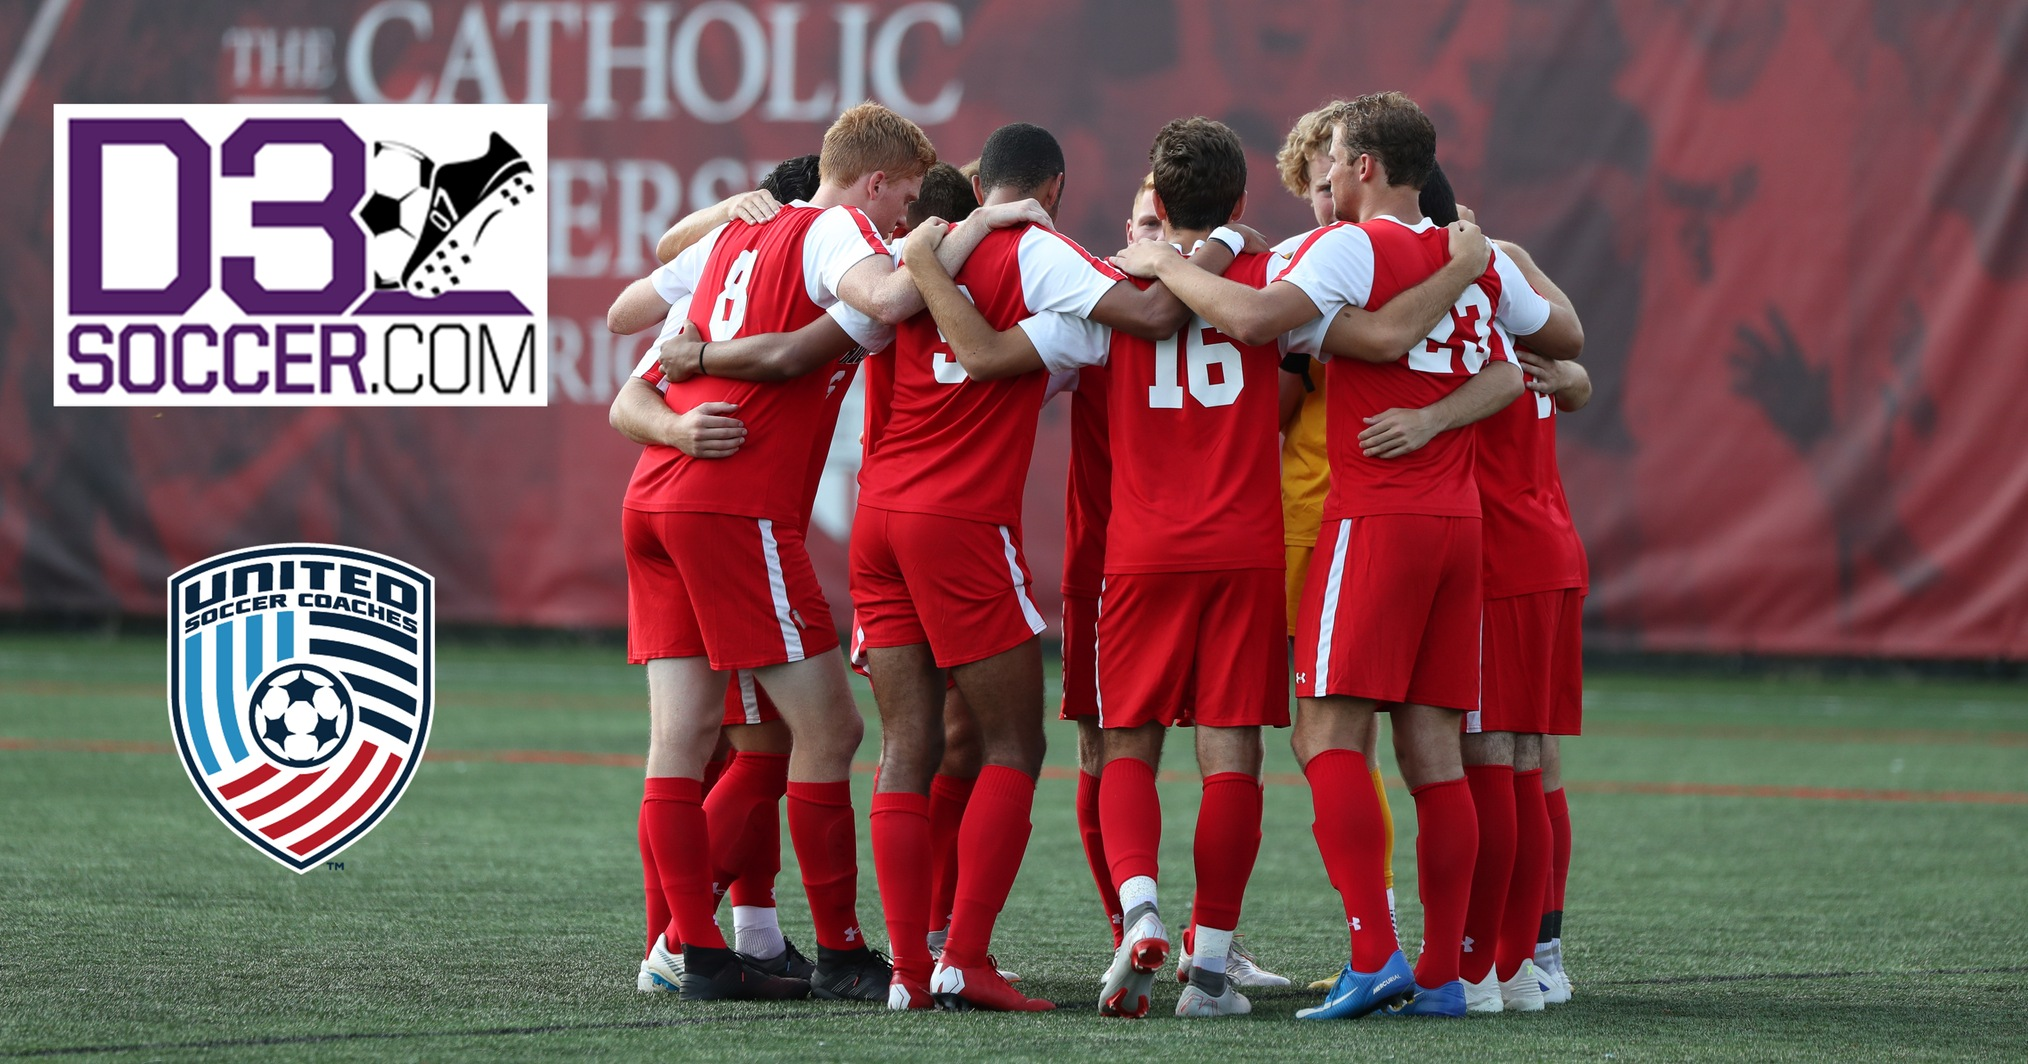 Cardinals Receiving Votes in United Soccer Coaches Poll